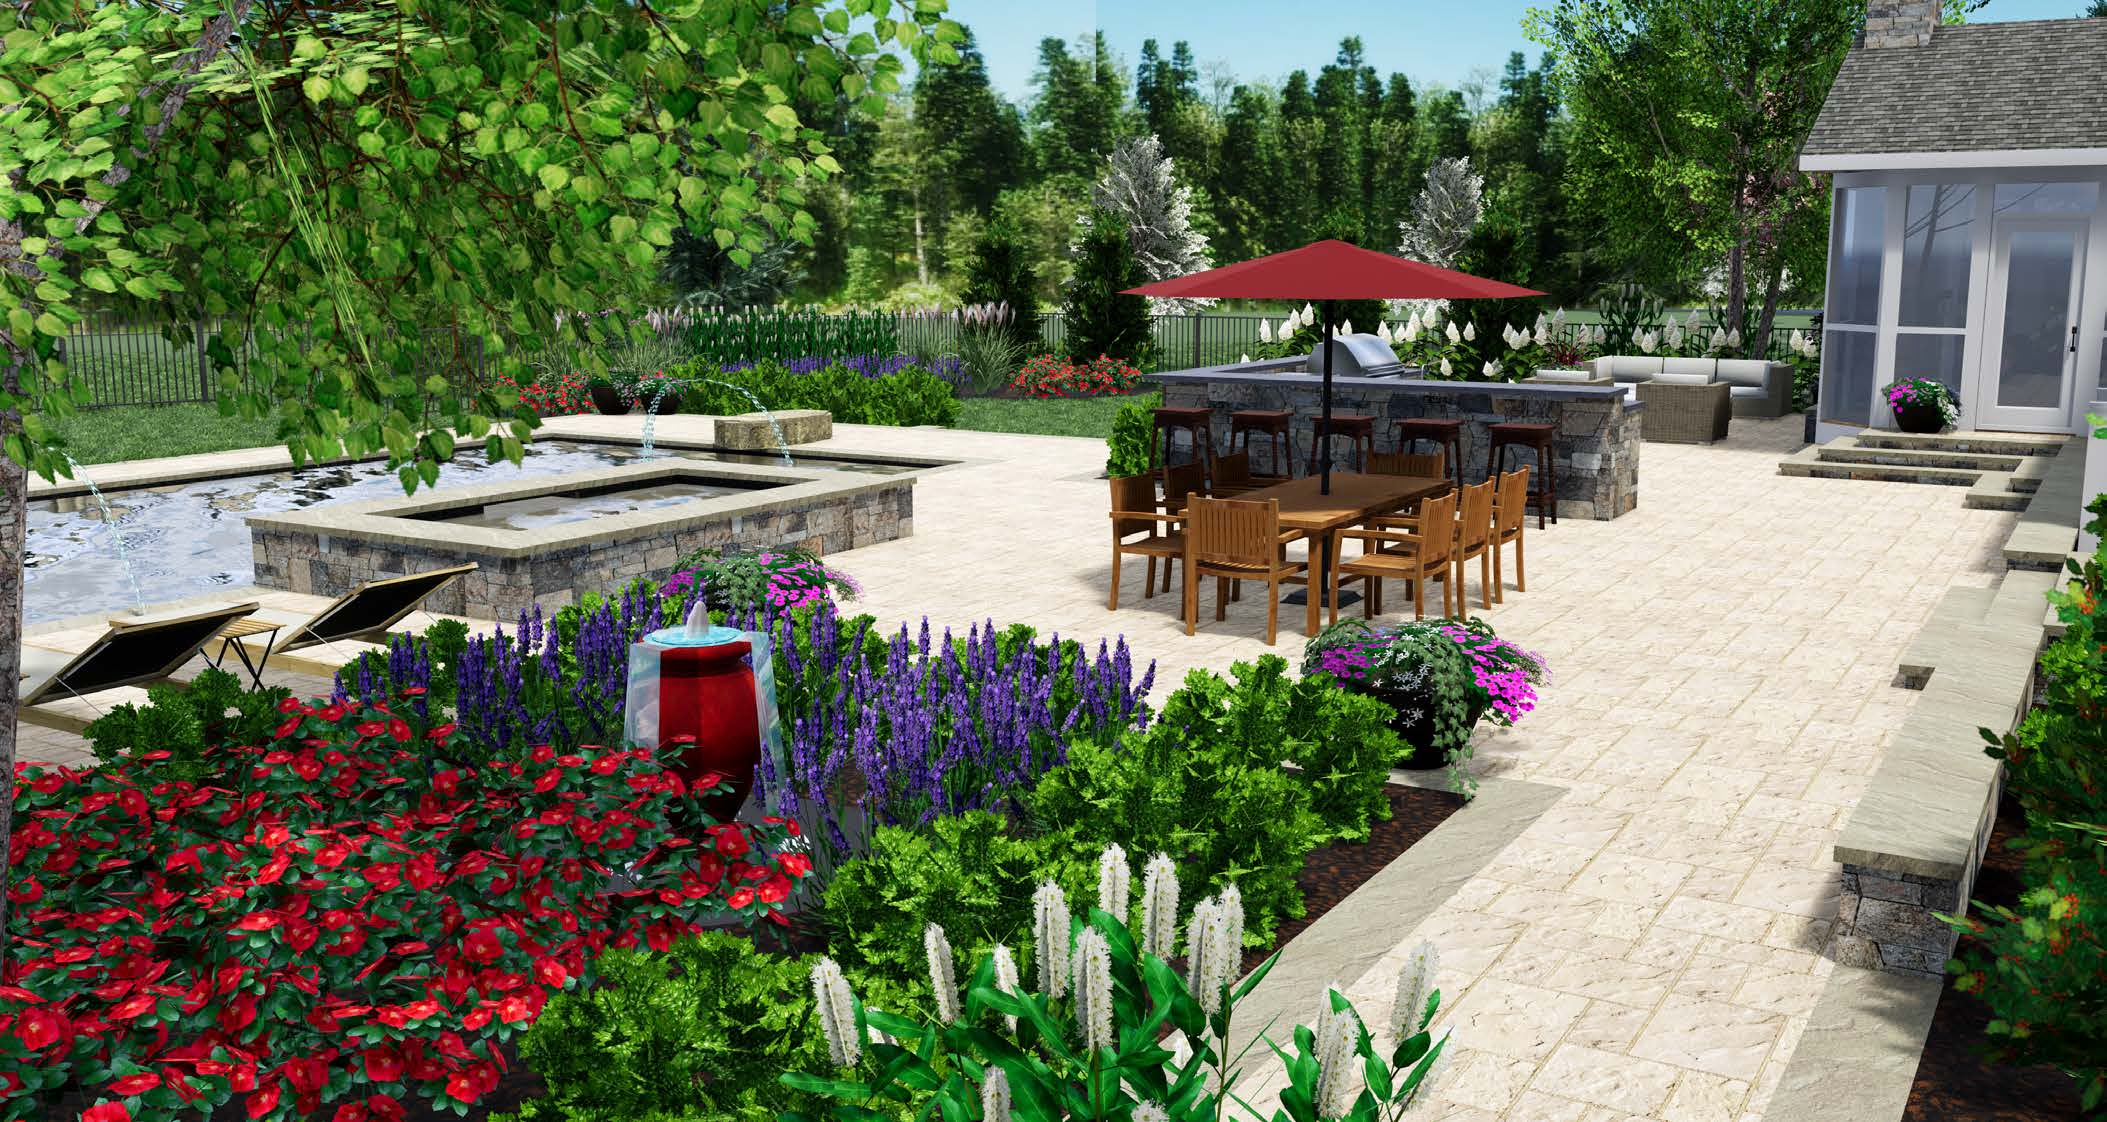 3D Landscape Design: Do I Need It and the Cost for Ashburn, Aldie, or Leesburg, VA?